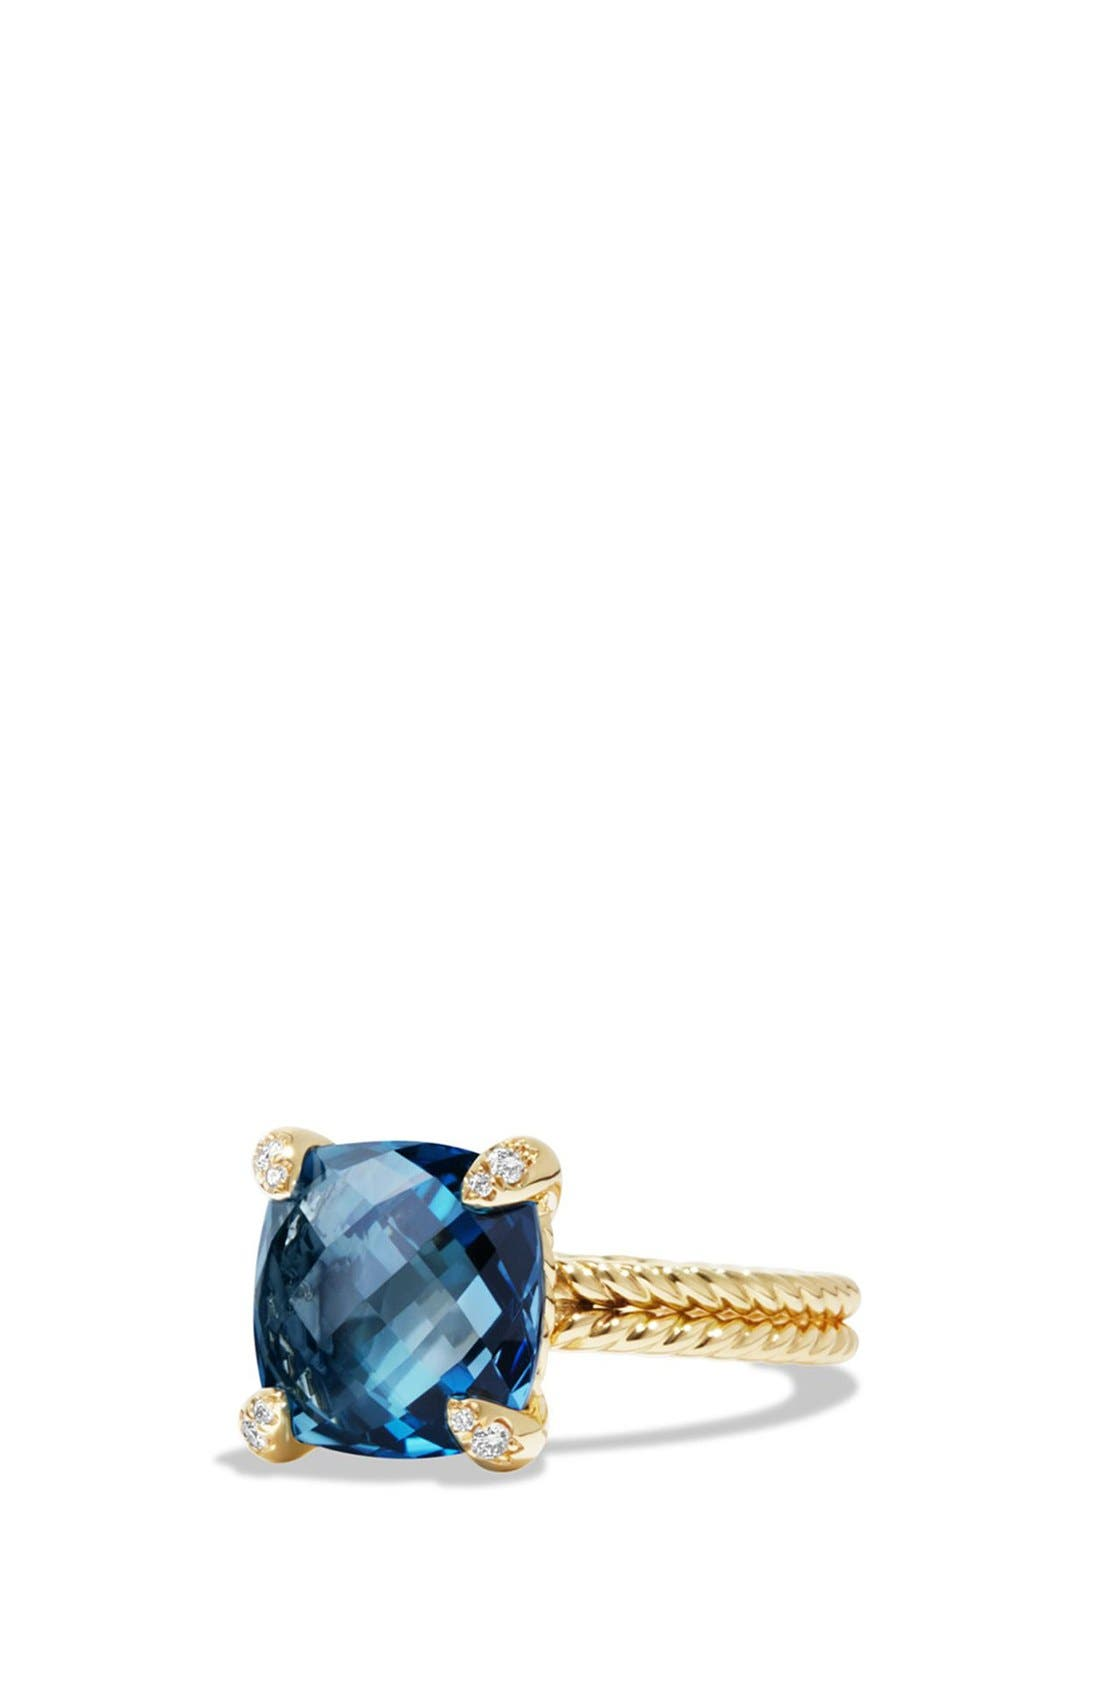 Châtelaine Ring with Hampton Blue Topaz and Diamonds in 18K Gold,                         Main,                         color, Hampton Blue Topaz